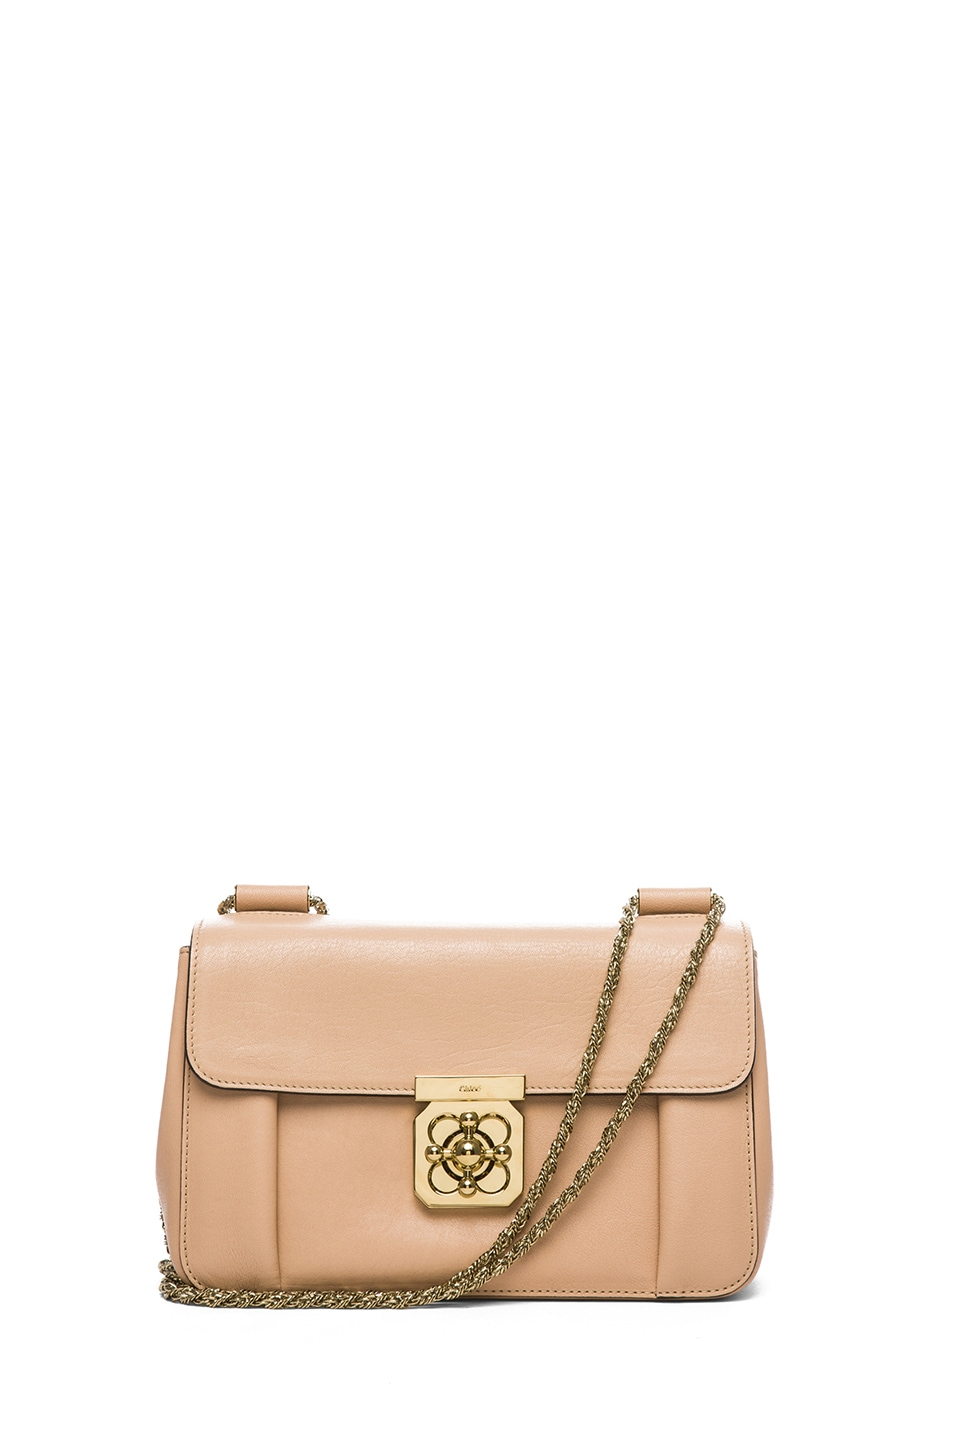 Image 1 of Chloe Medium Elsie Shoulder Bag in Biscotti Beige